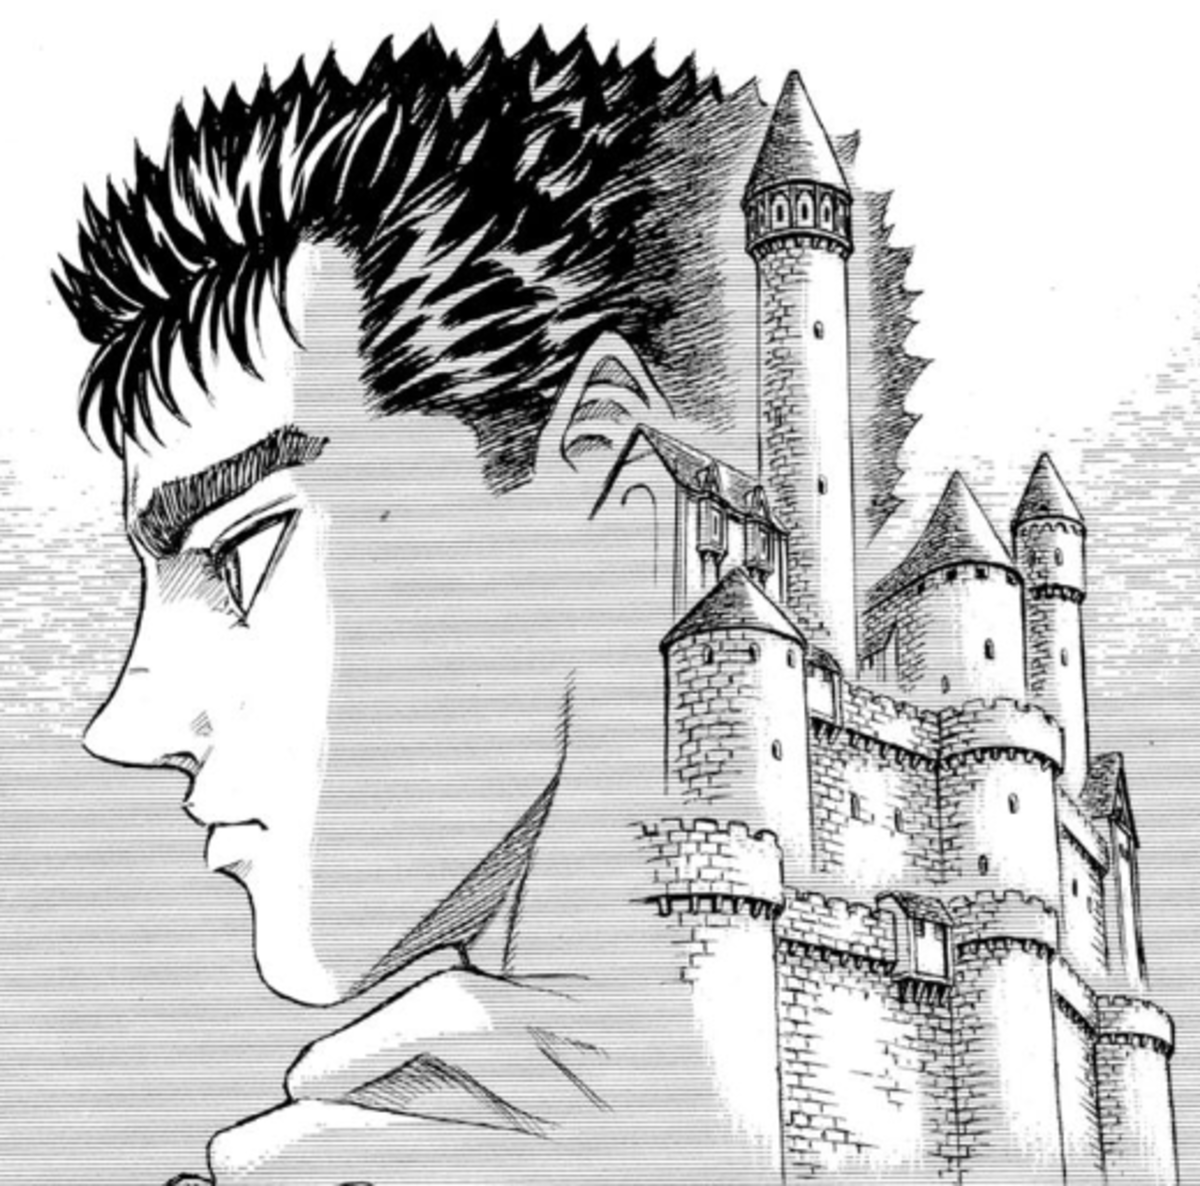 The role of Guts in Griffith's dream is a deep existential question for the series